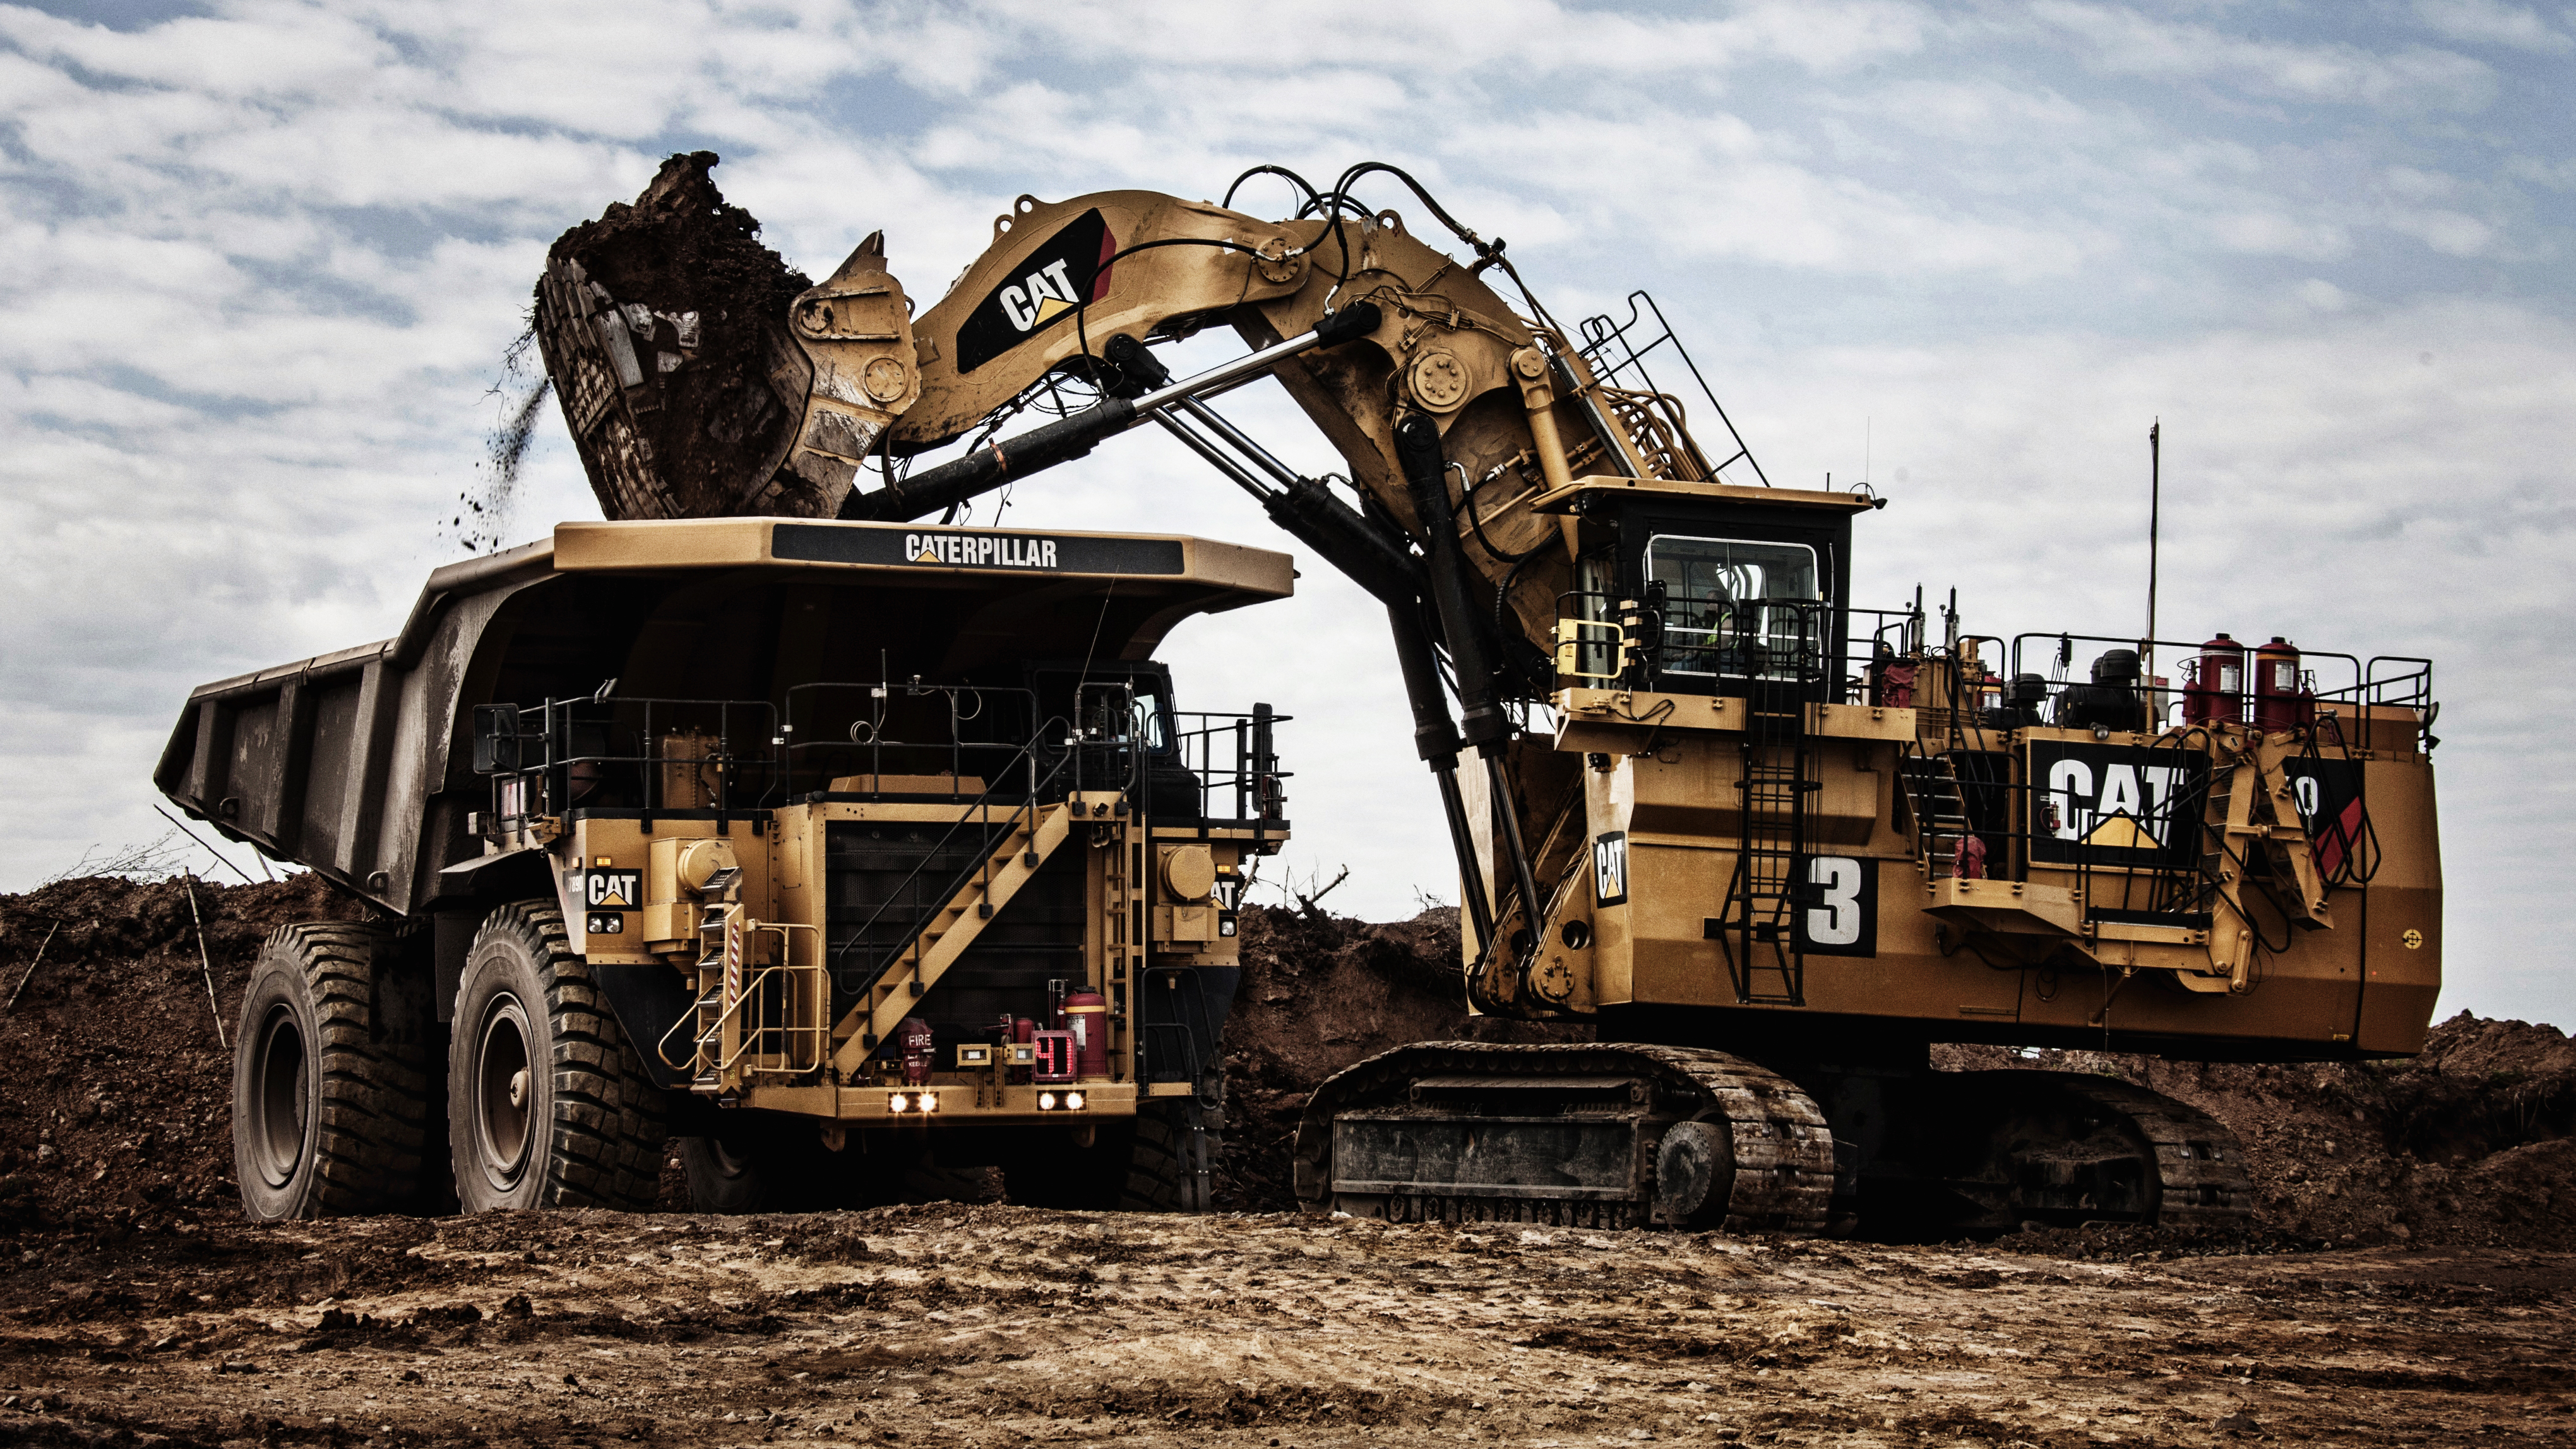 Caterpillar 789D Dump Truck & Caterpillar Excavator 4k Ultra HD Wallpaper | Background Image ...